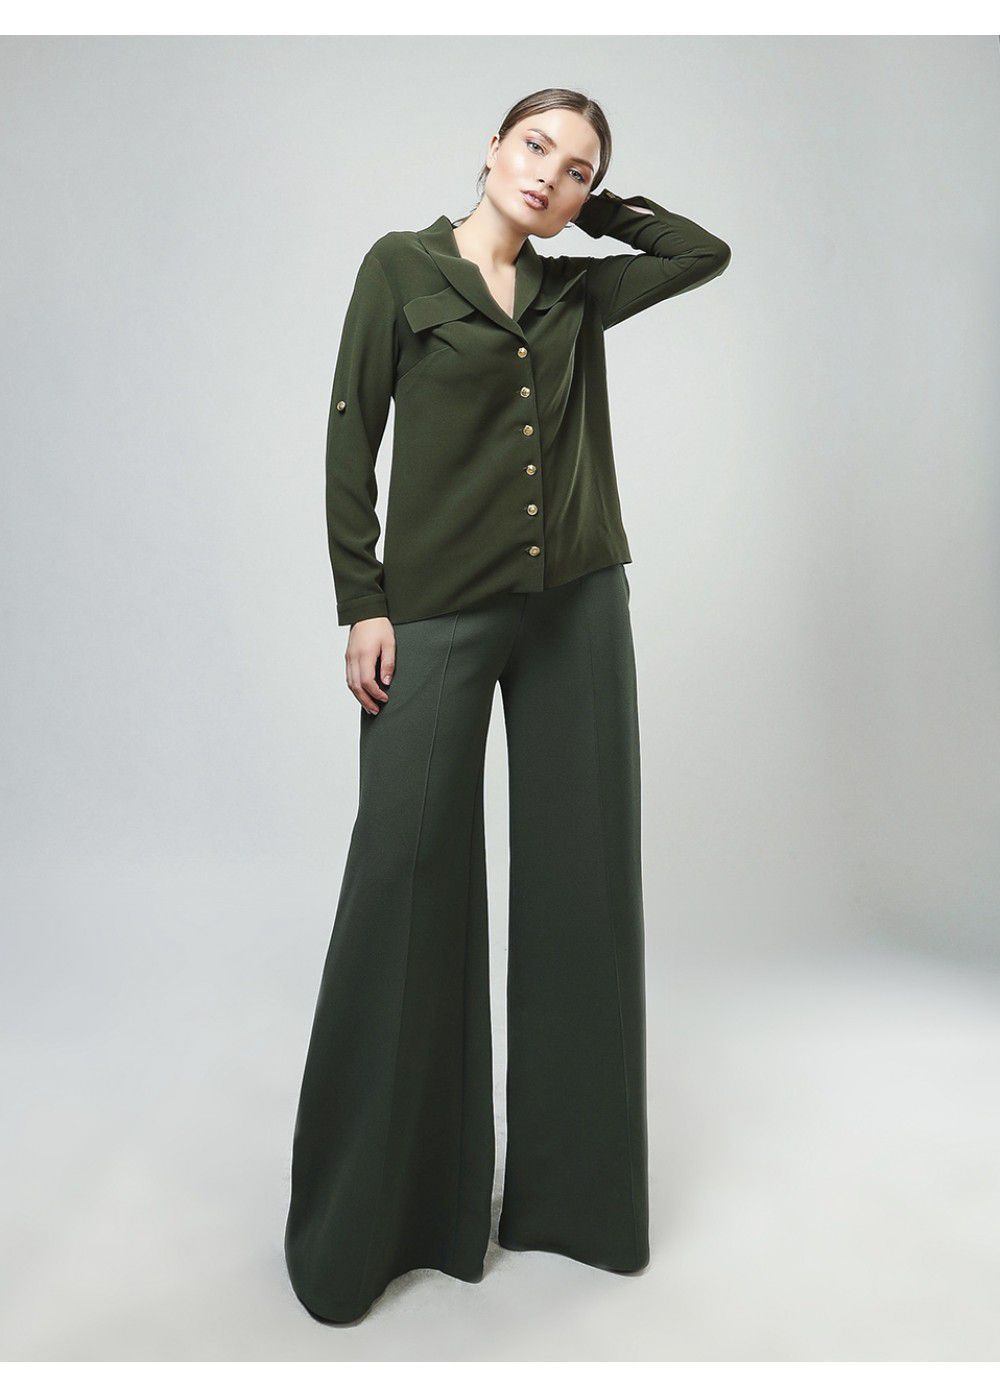 Maleone Pants in Khaki